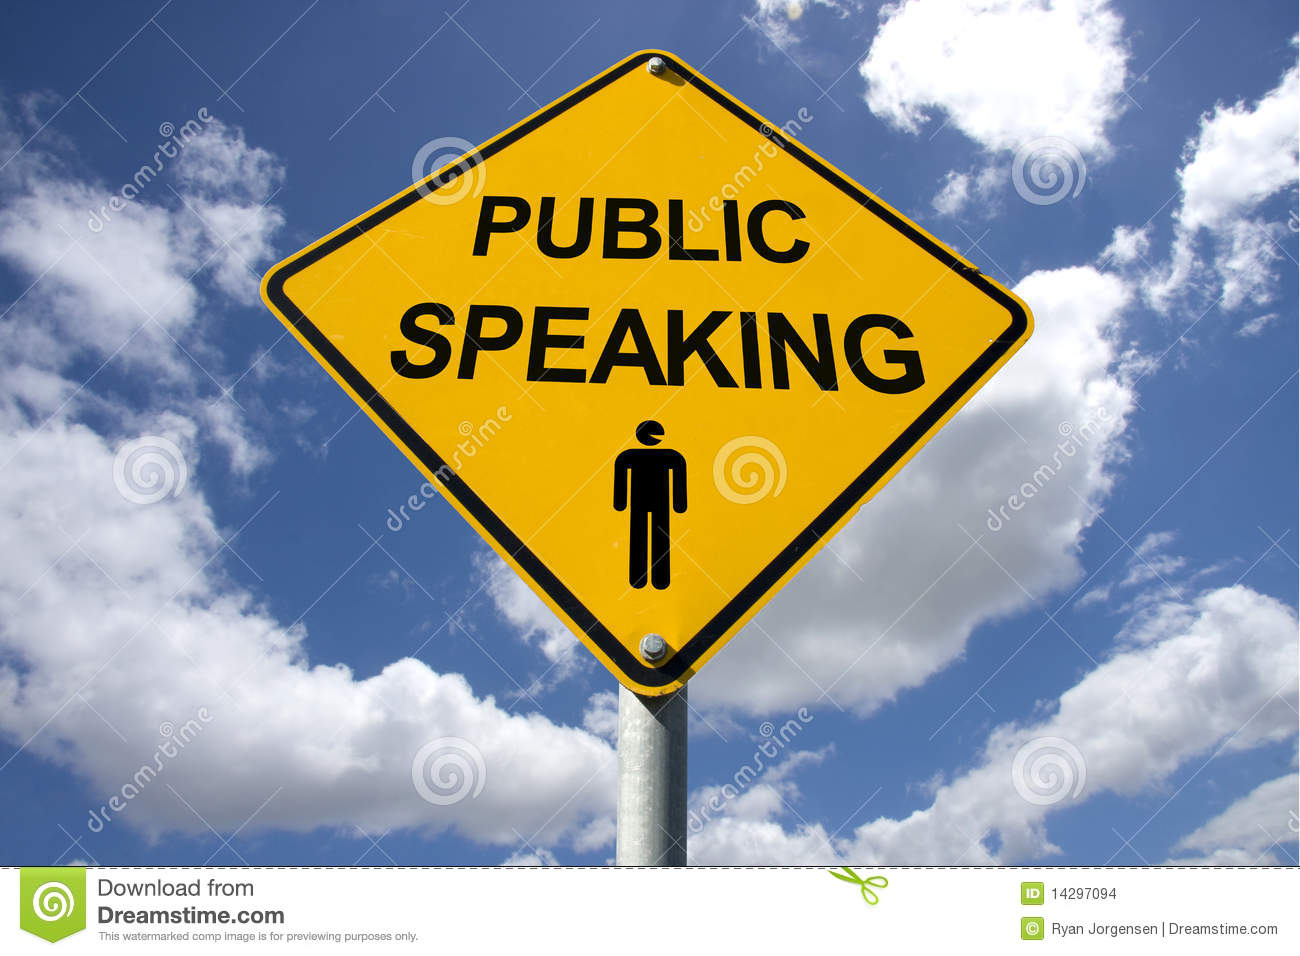 Https Www Dreamstime Com Stock Images Public Speaking Sign Image14297094